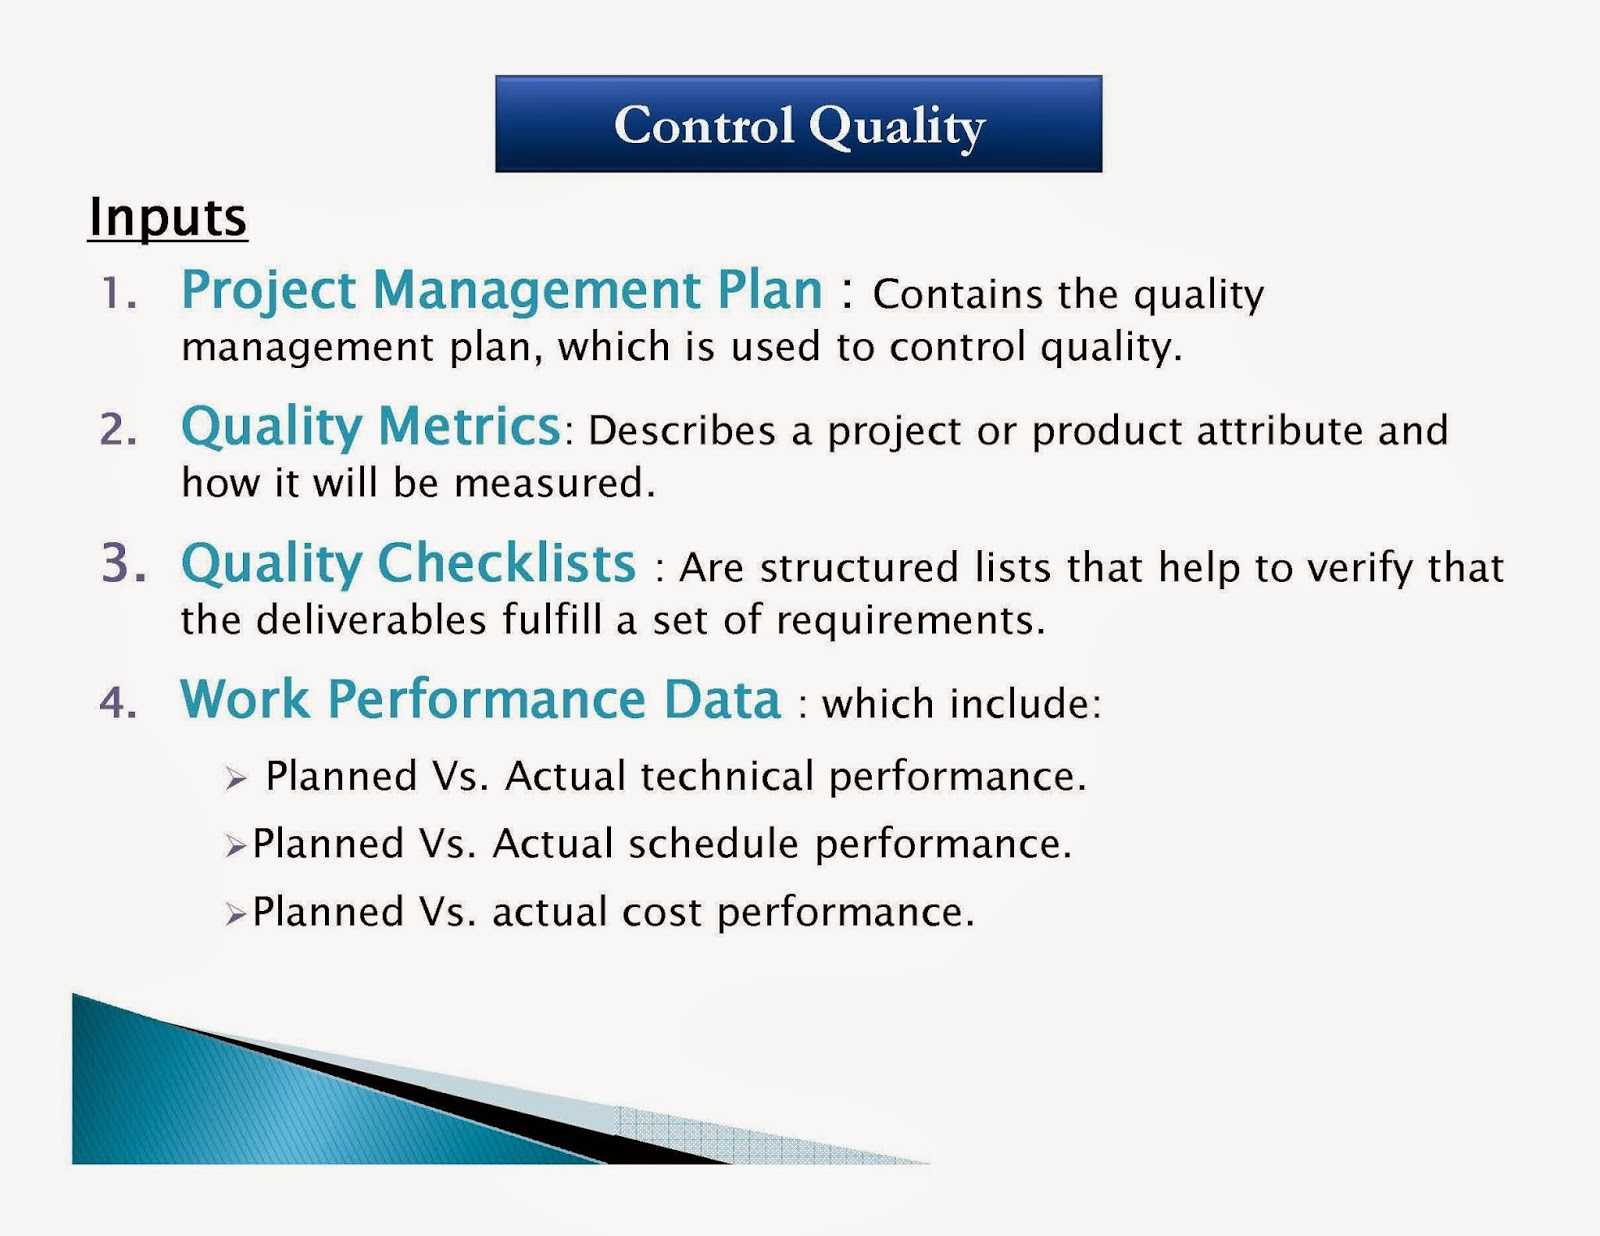 pm0017 project quality management The quality management plan is a component of the project management plan it describes how quality requirements for the project will be met.